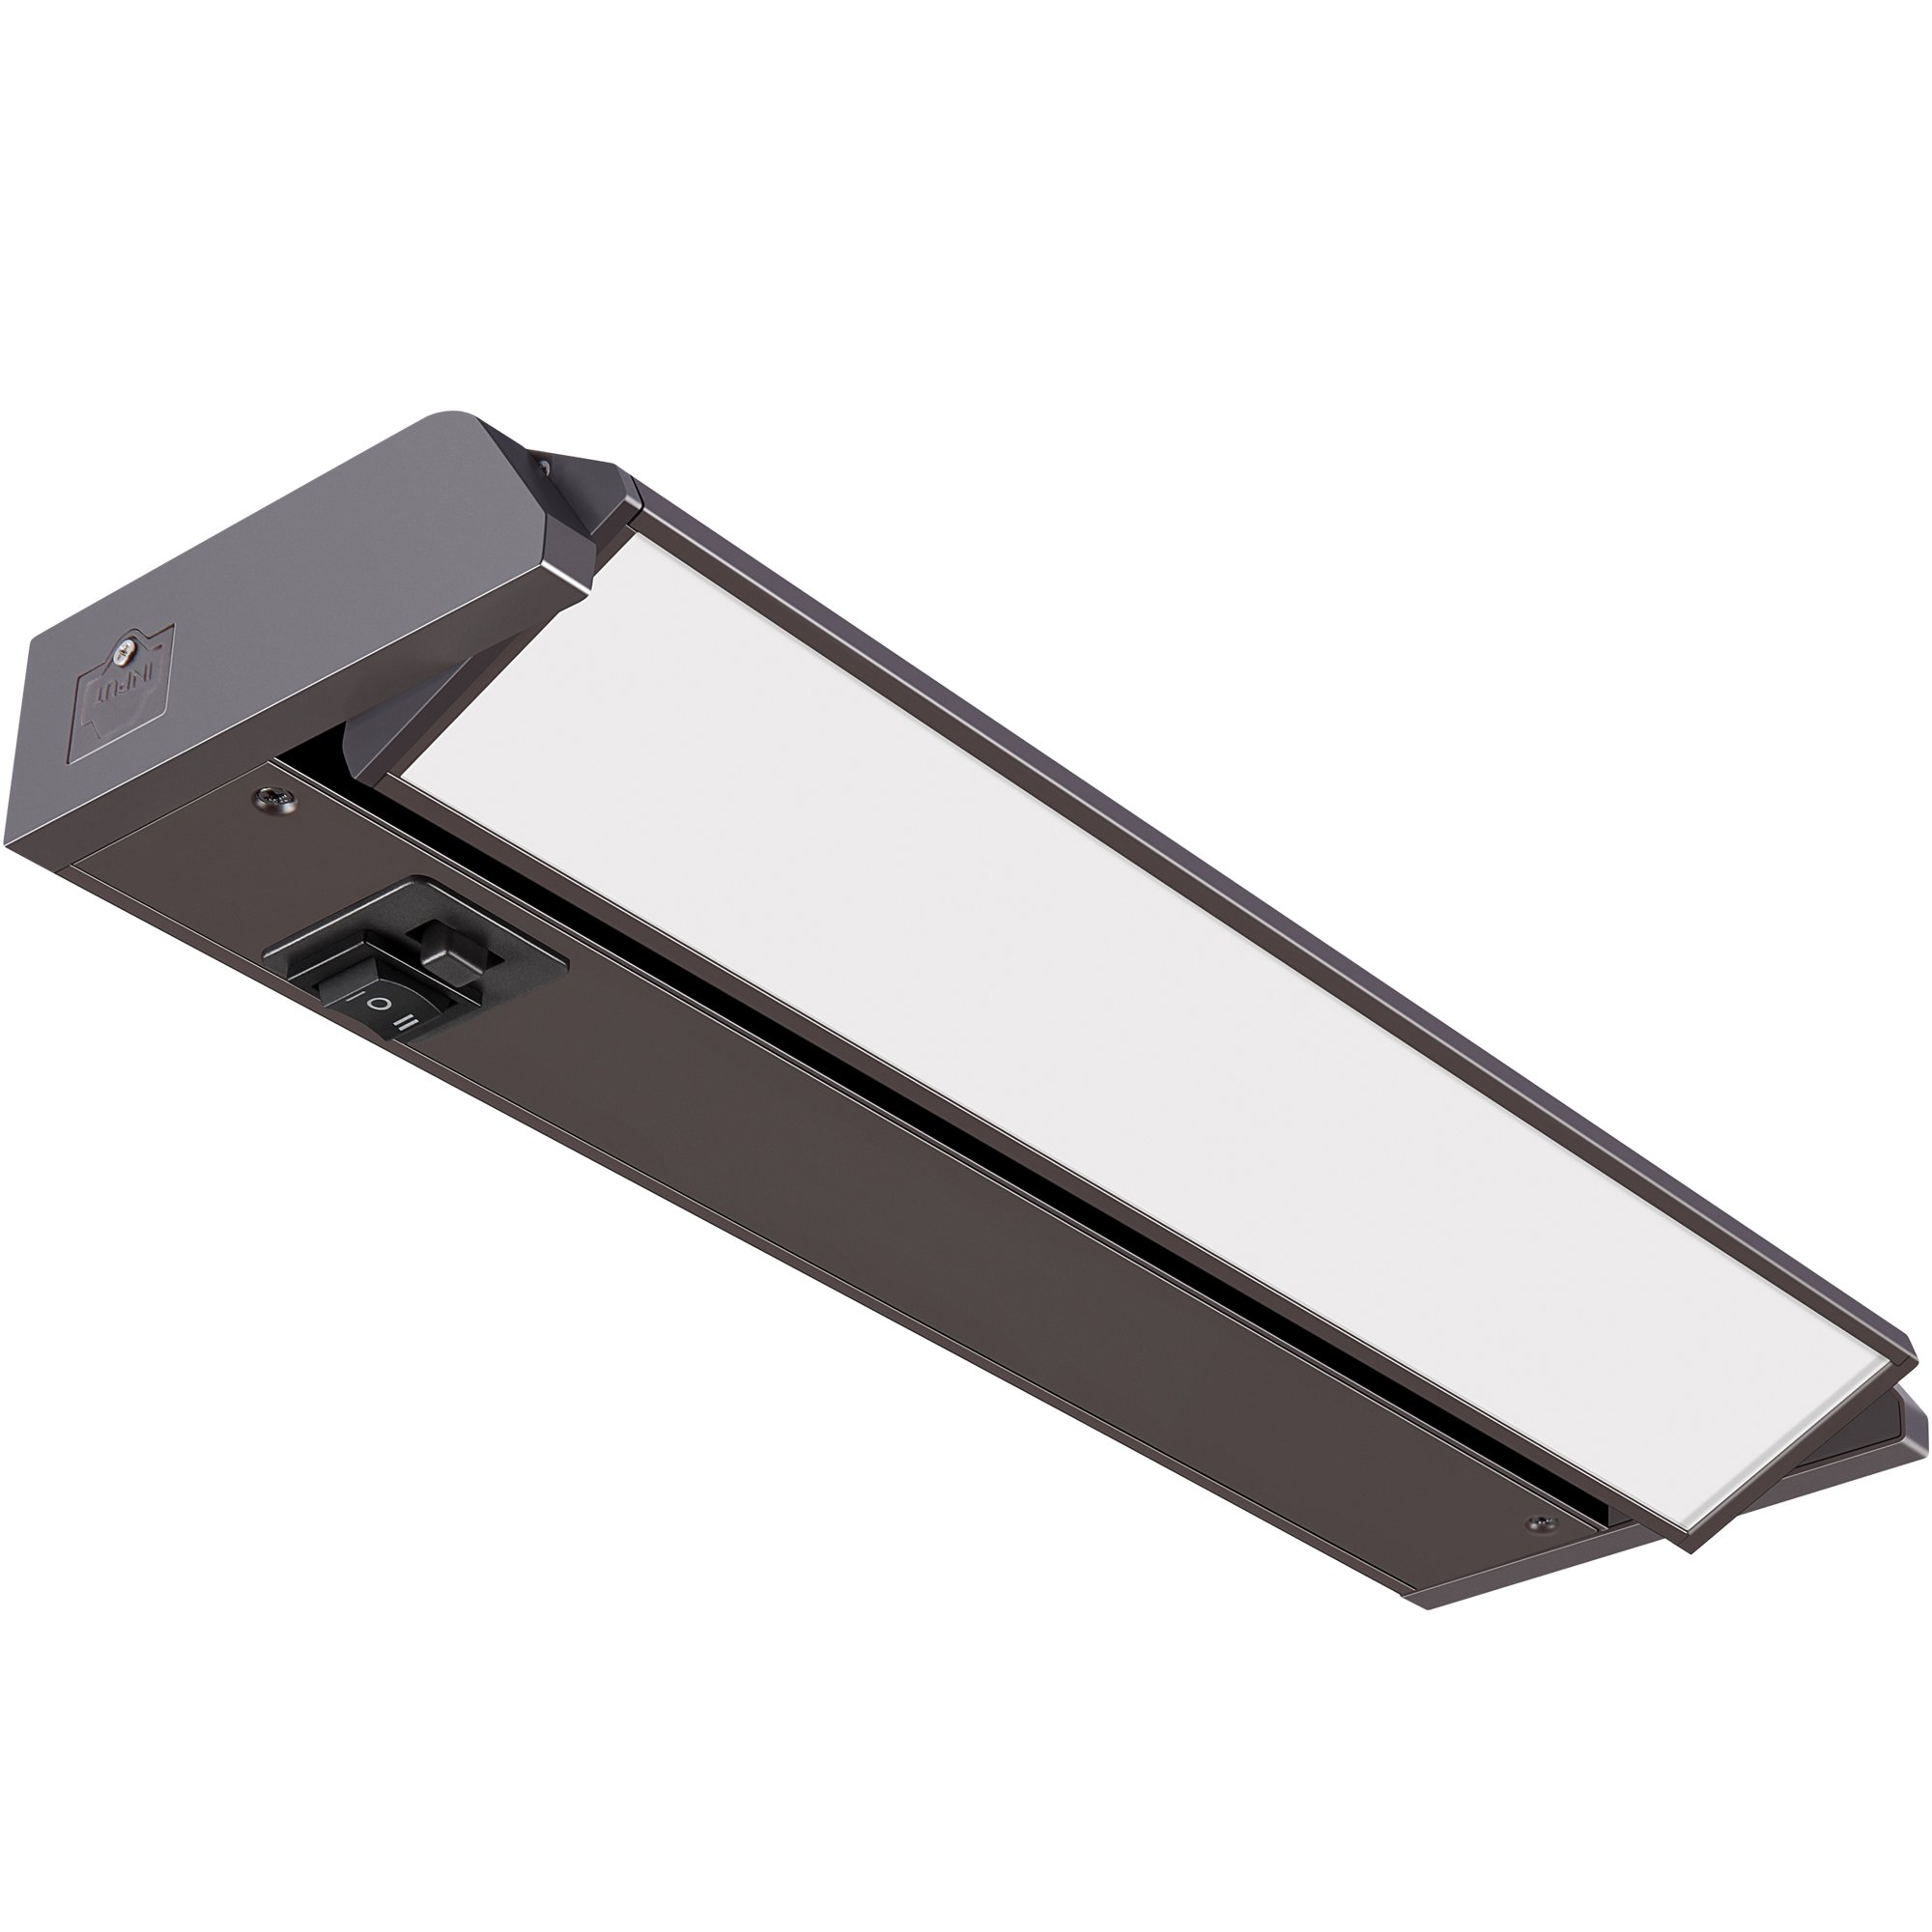 GetInLight 3 Color Levels Swivel LED Under Cabinet Light, Dimmable, Hardwired/Plug-in, Warm White(2700K), Soft White(3000K), Bright White(4000K), Bronze Finished, 12-inch, IN-0202-1-BZ by GetInLight